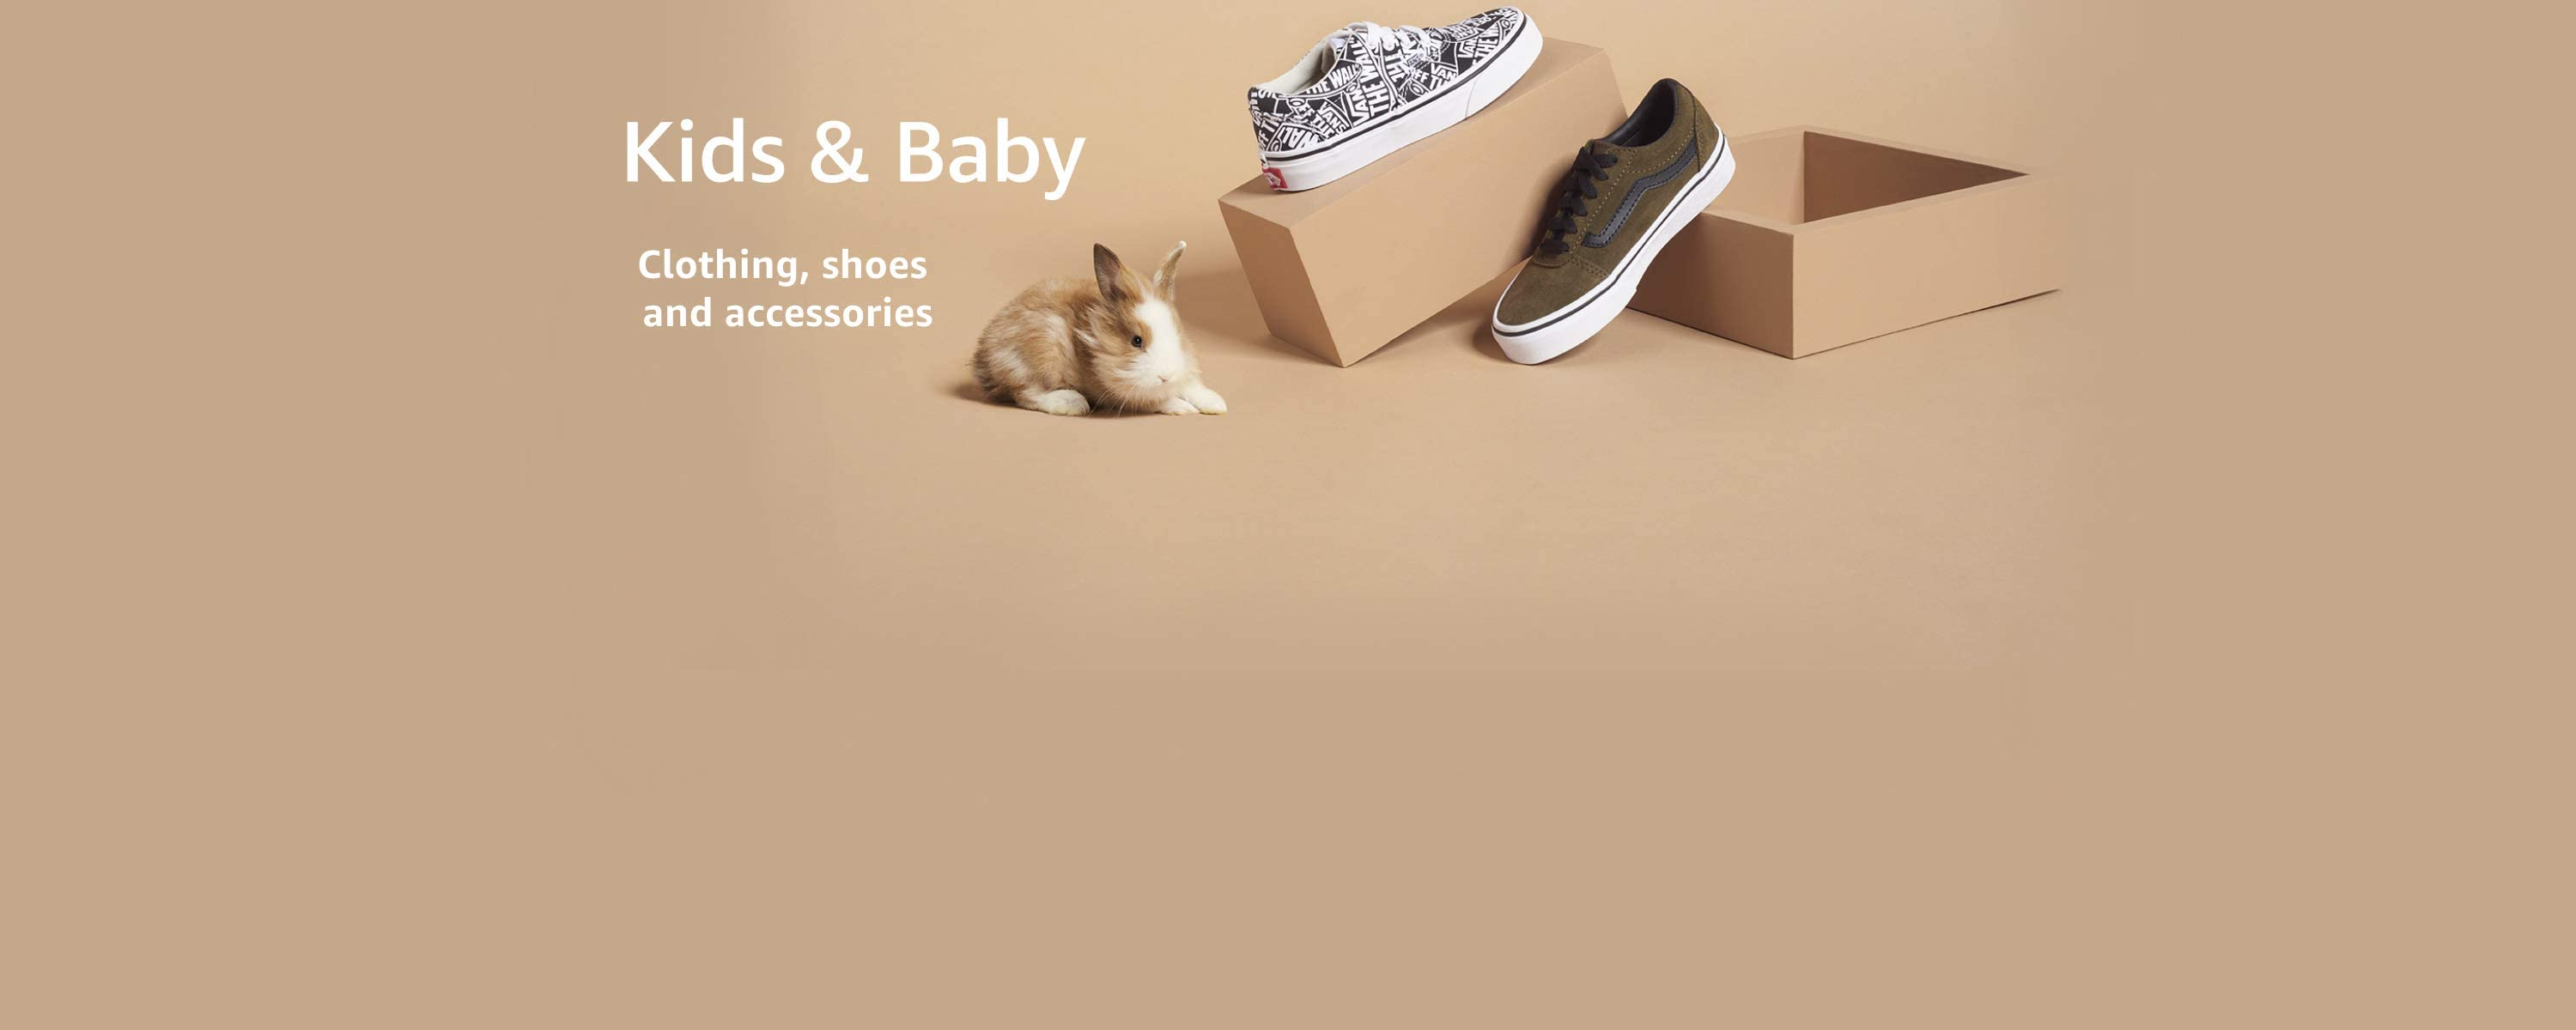 Shop kids & baby clothing, shoes and accessories